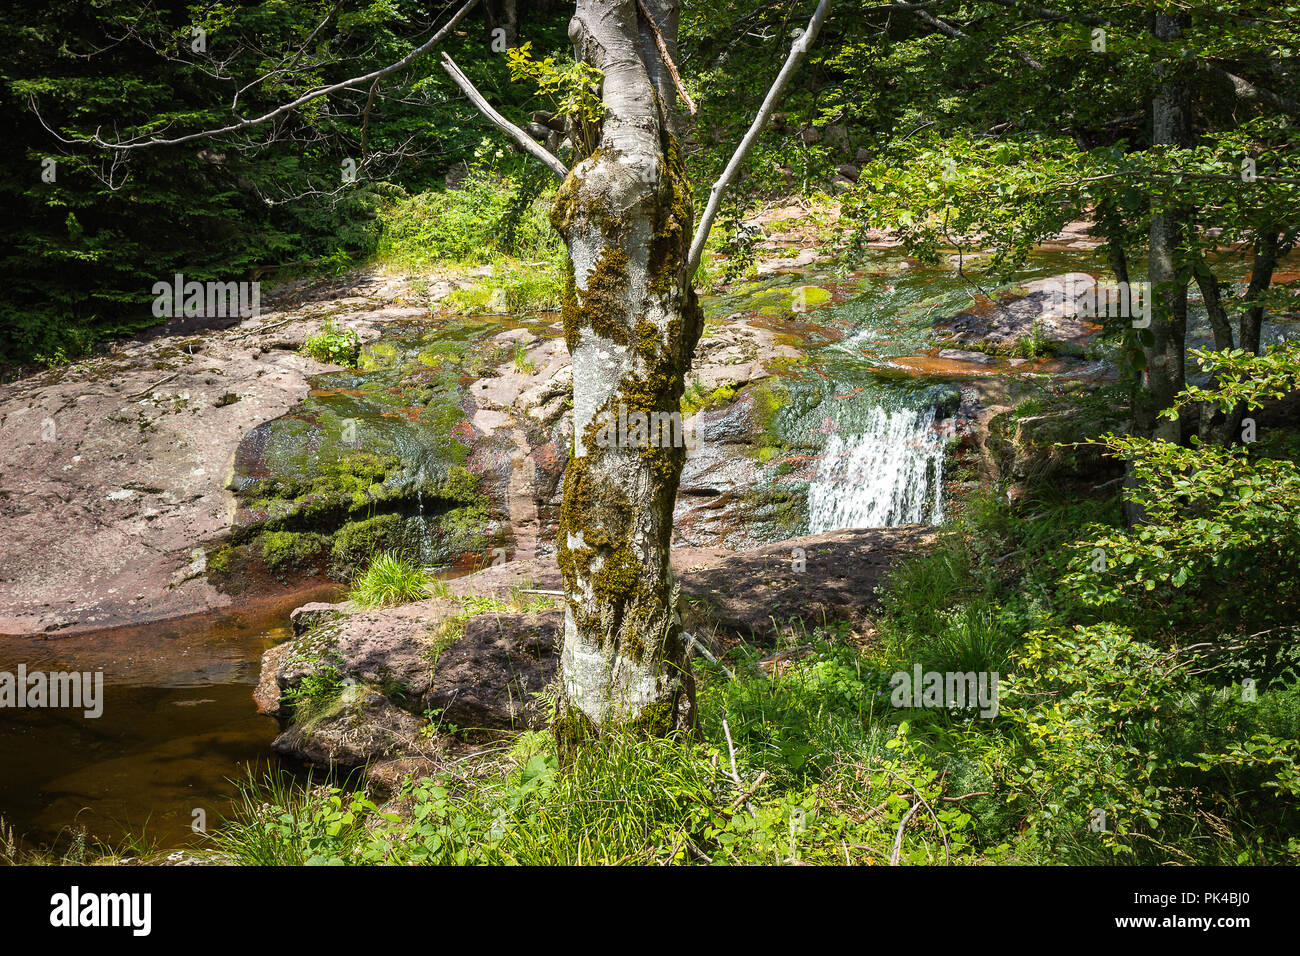 Beautiful, colorful mountain creek cascading through the thick forest and a foreground tree with moss on Old mountain Stock Photo